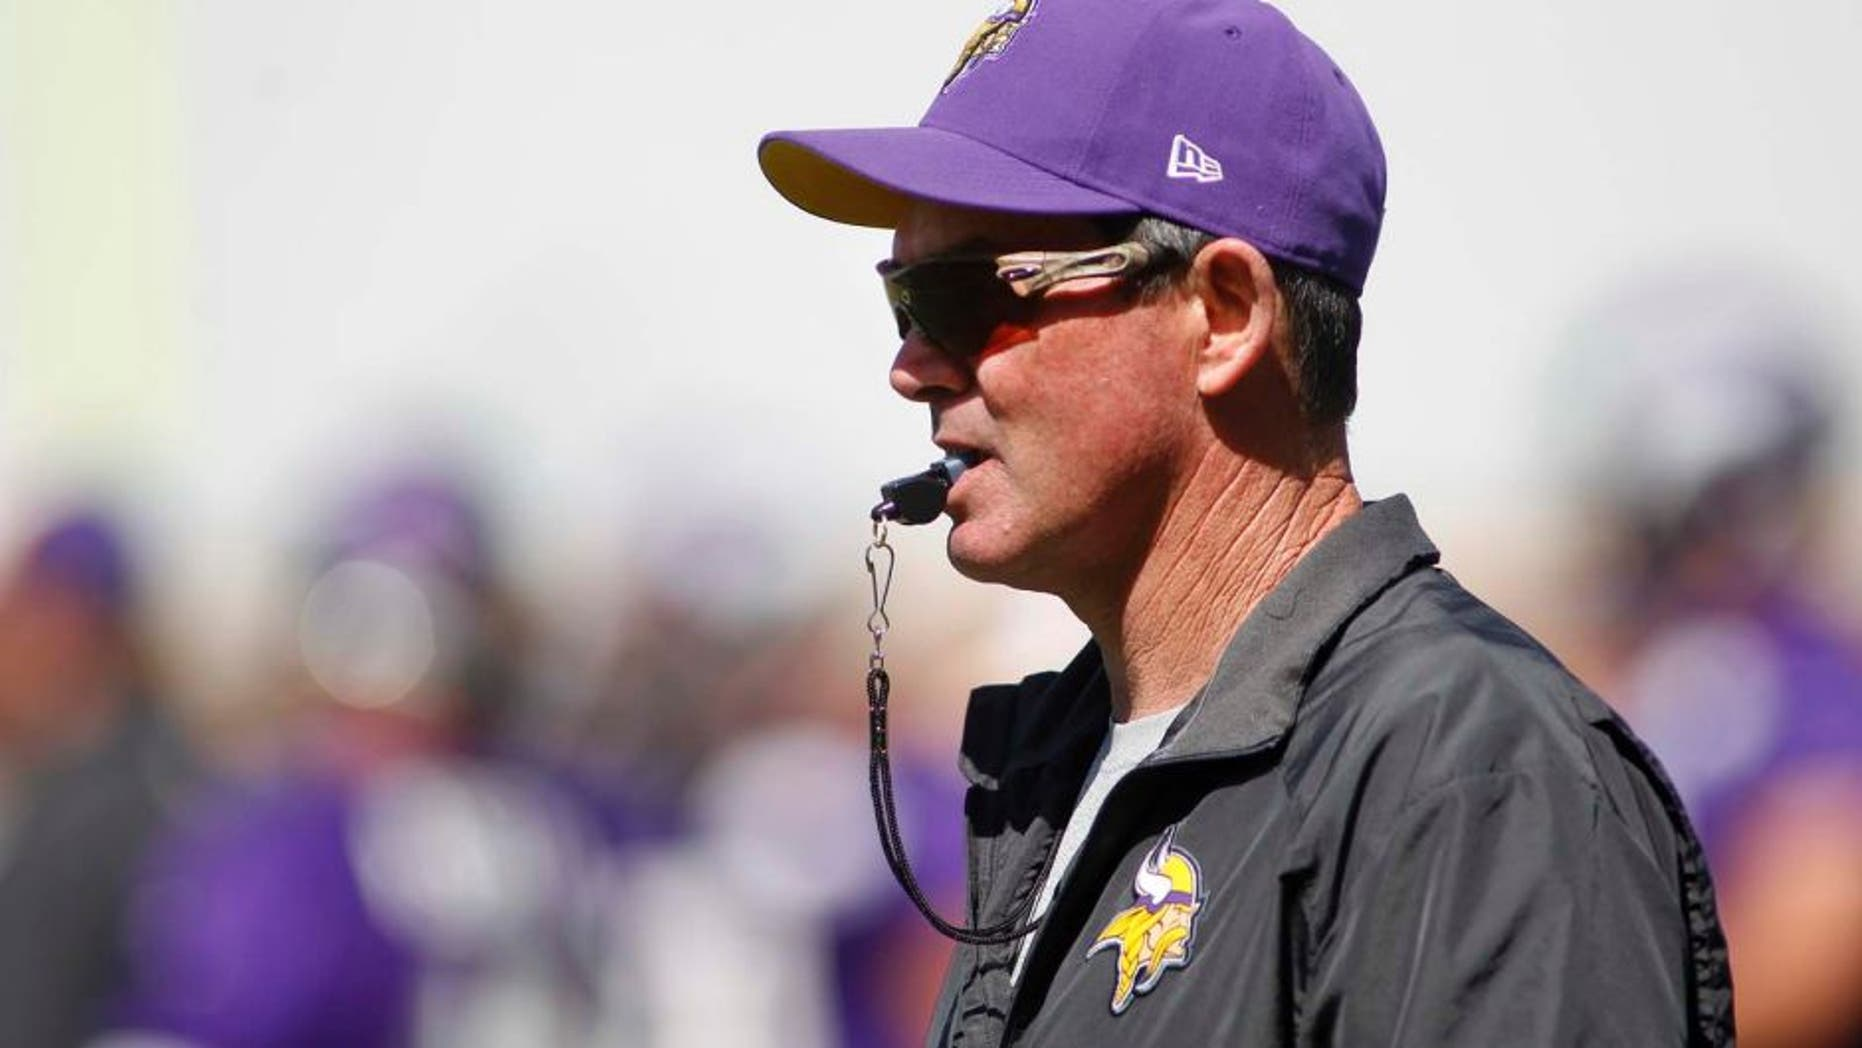 Thursday, May 29: Minnesota Vikings head coach Mike Zimmer watches at an organized team activity (OTA) at the Vikings football practice facility in Eden Prairie, Minn.